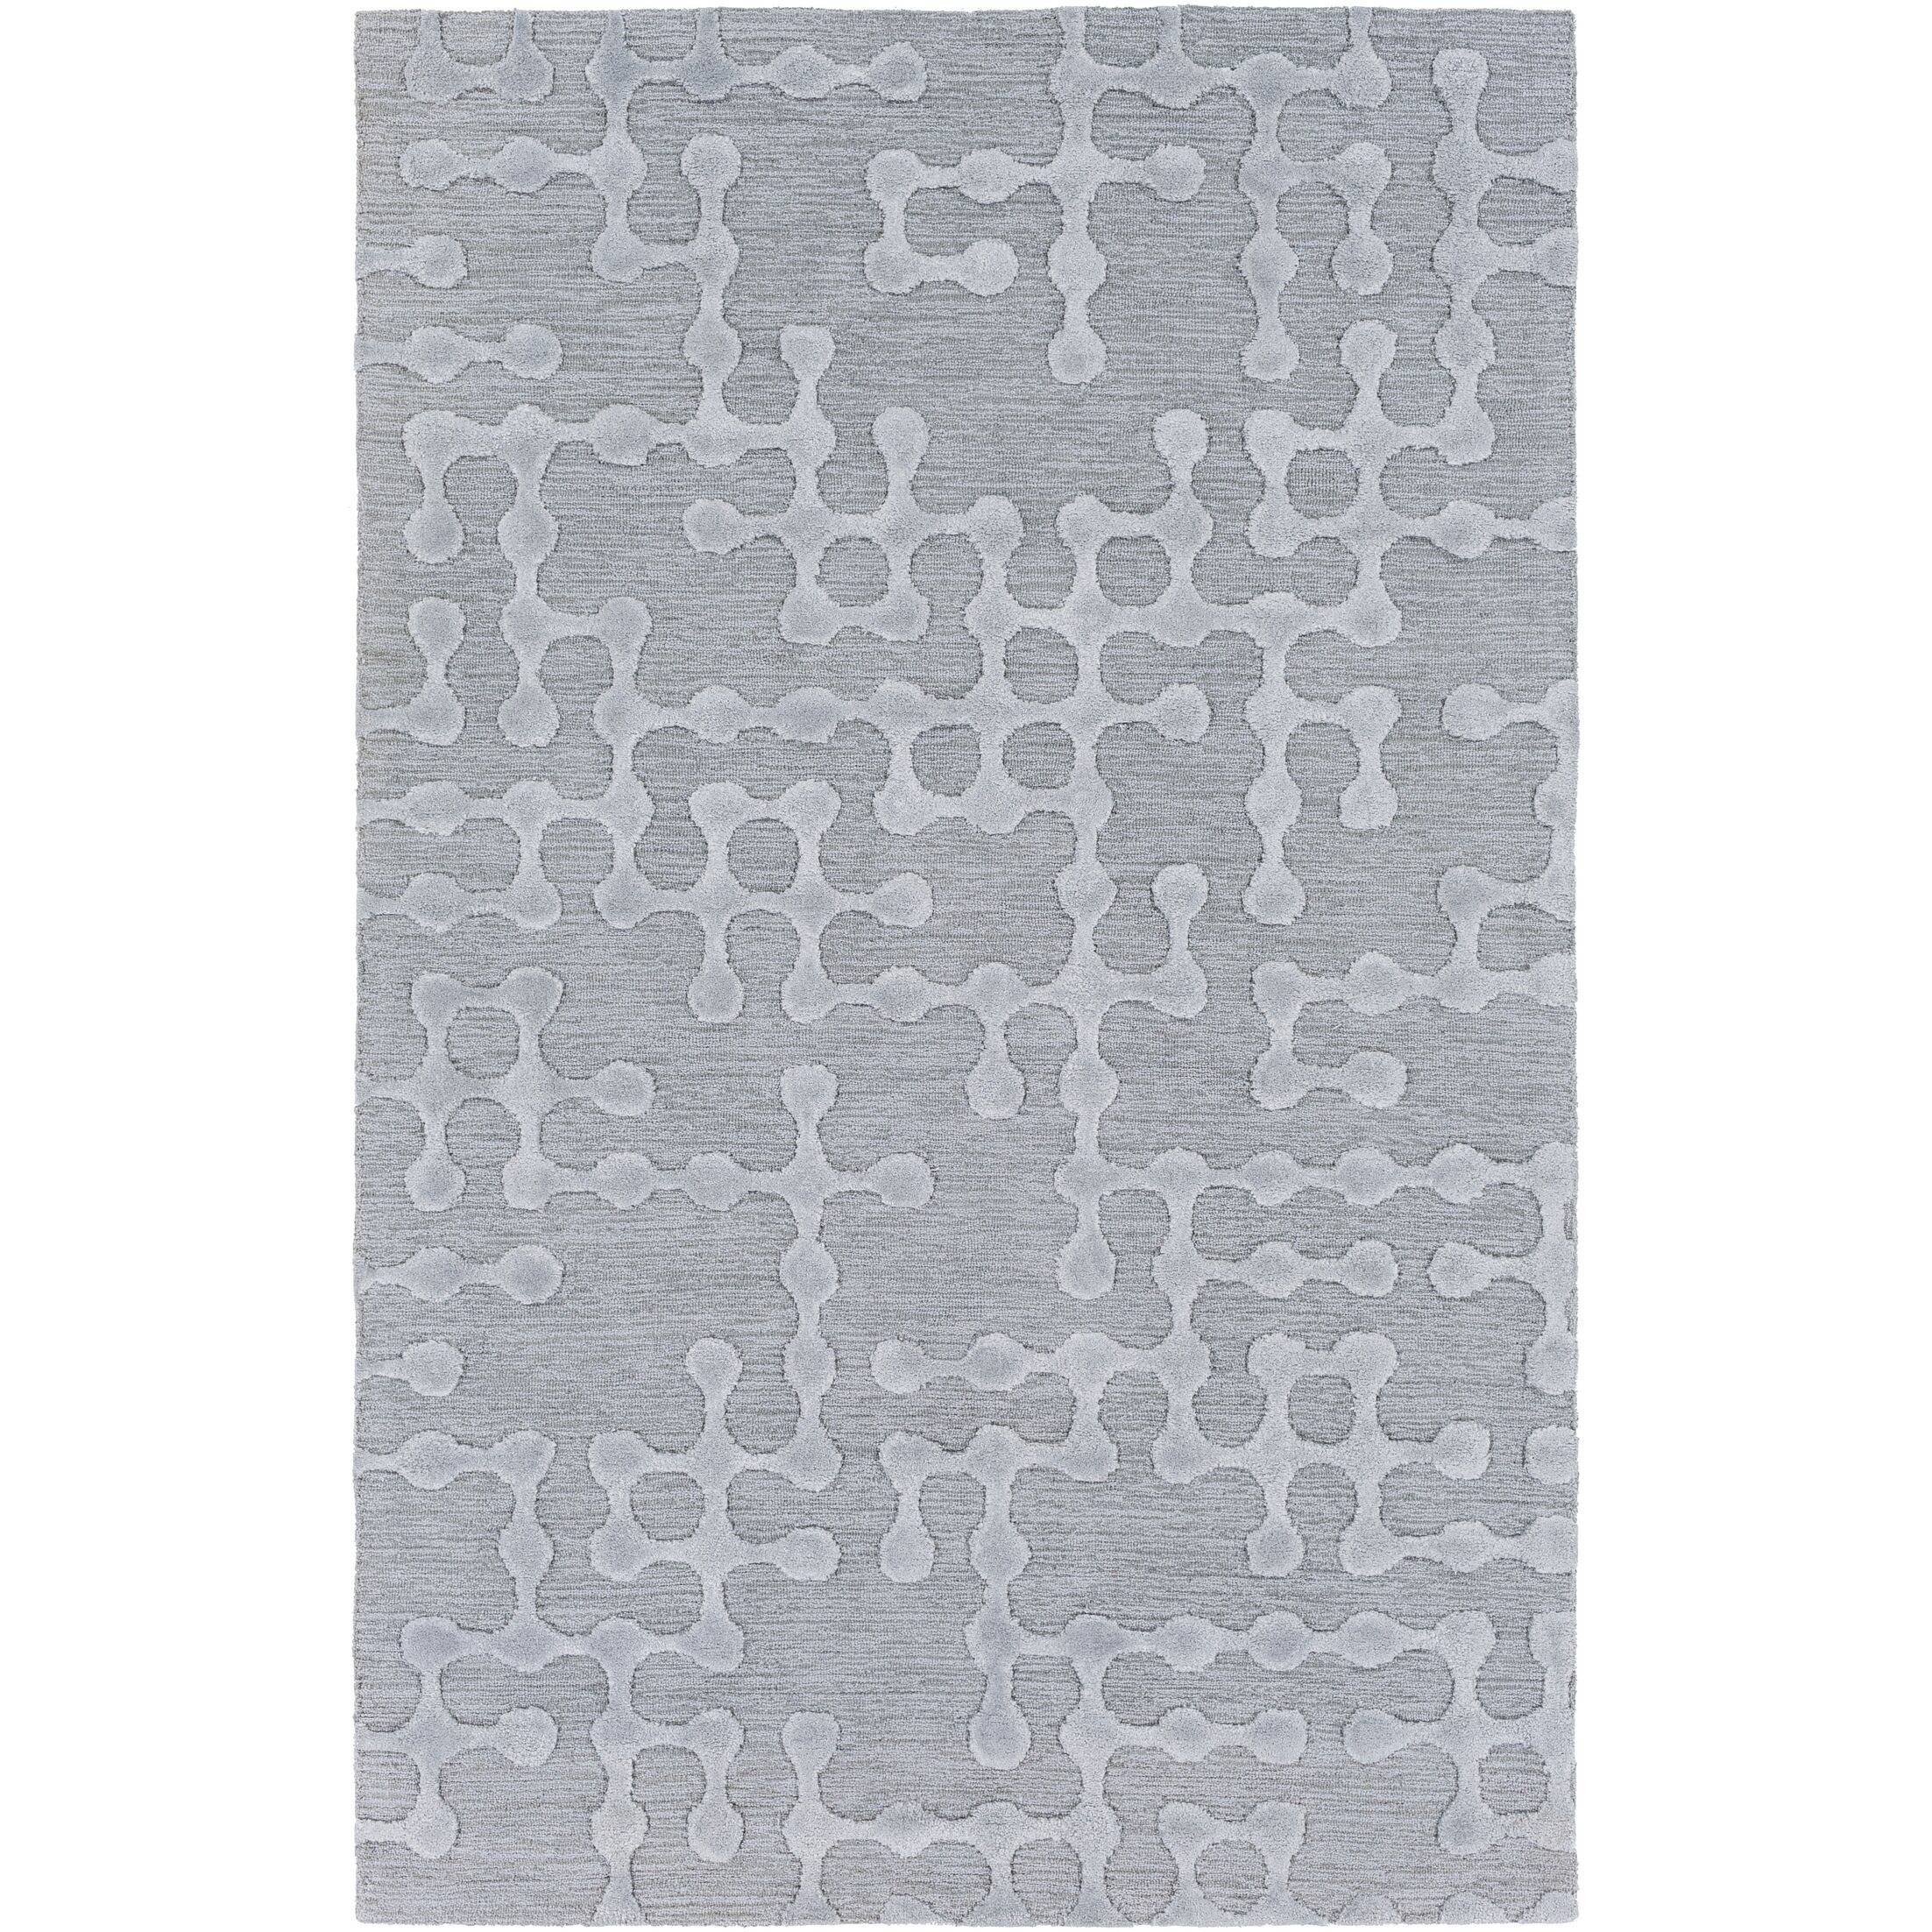 Serpentis Hand Woven Dark Purple/Taupe Area Rug Rug Size: Rectangle 6' x 9'